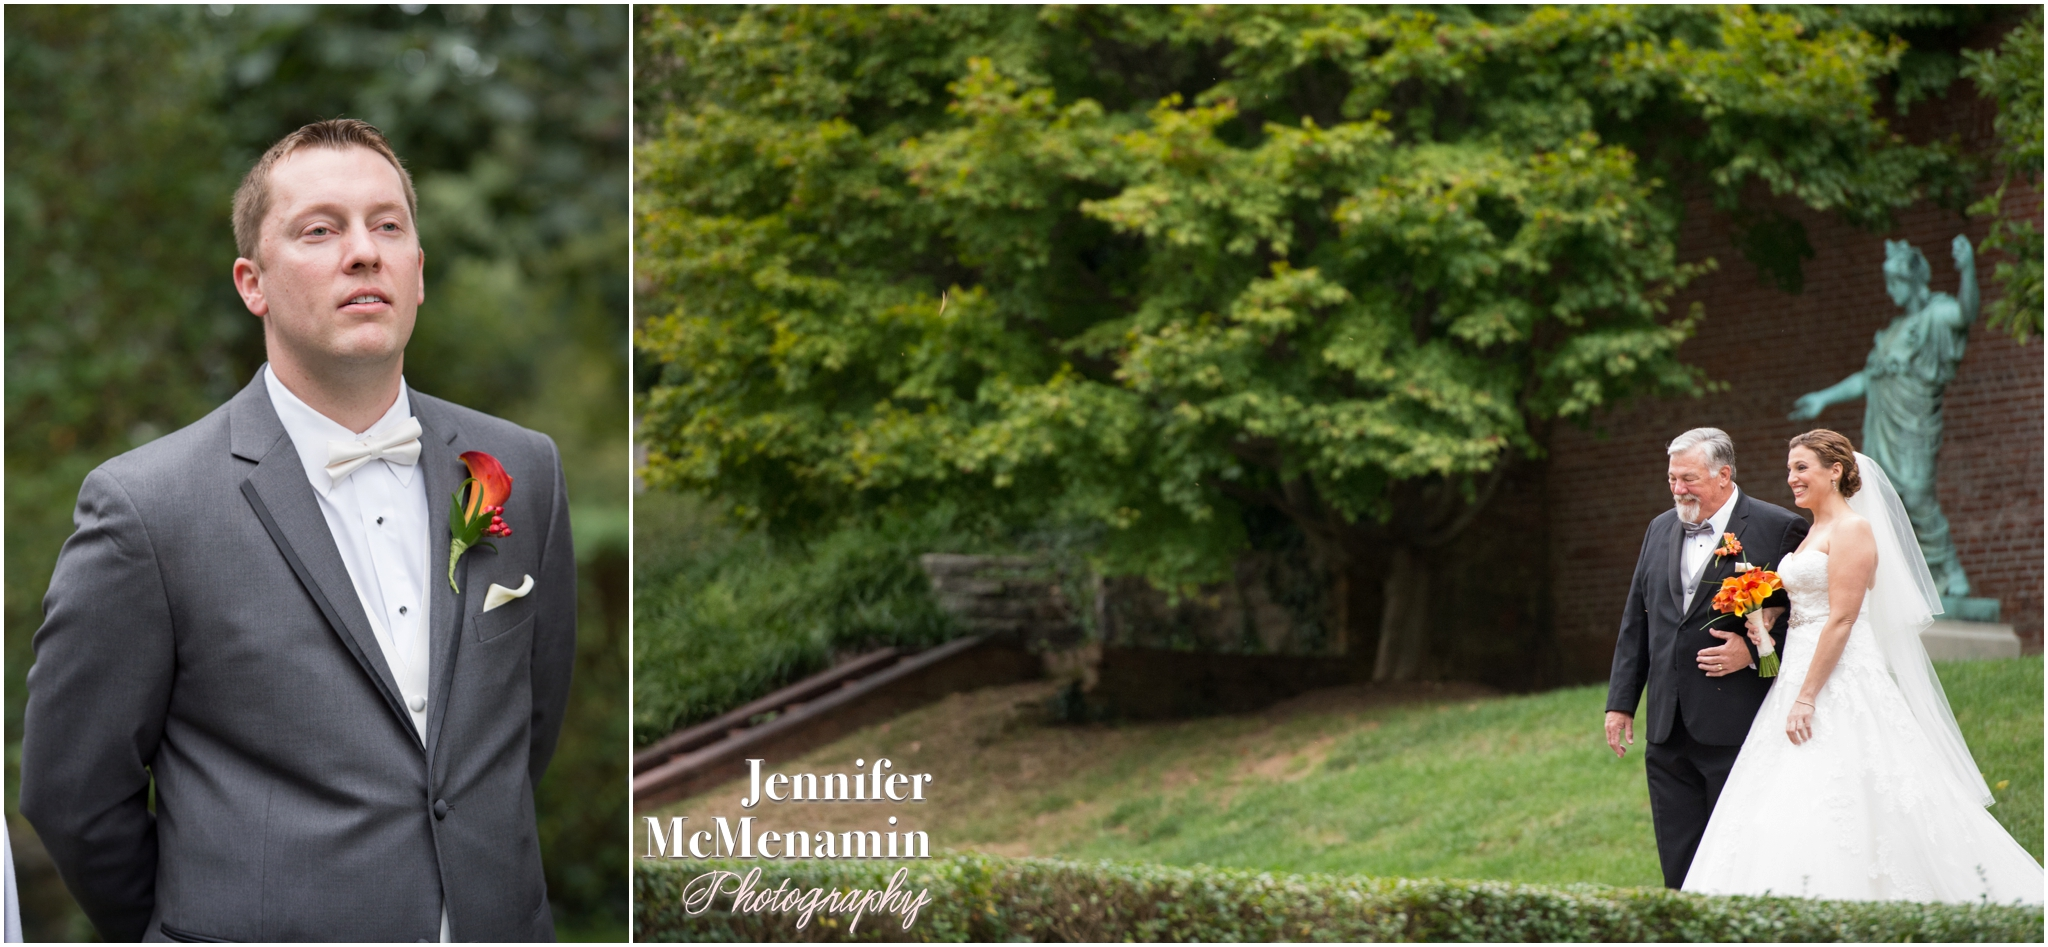 042-HenningMiller_01496-0303_JenniferMcMenaminPhotography_Evergreen-Museum-And-Carriage-House_Evergreen-wedding_Baltimore-wedding-photographer_Baltimore-wedding-photography